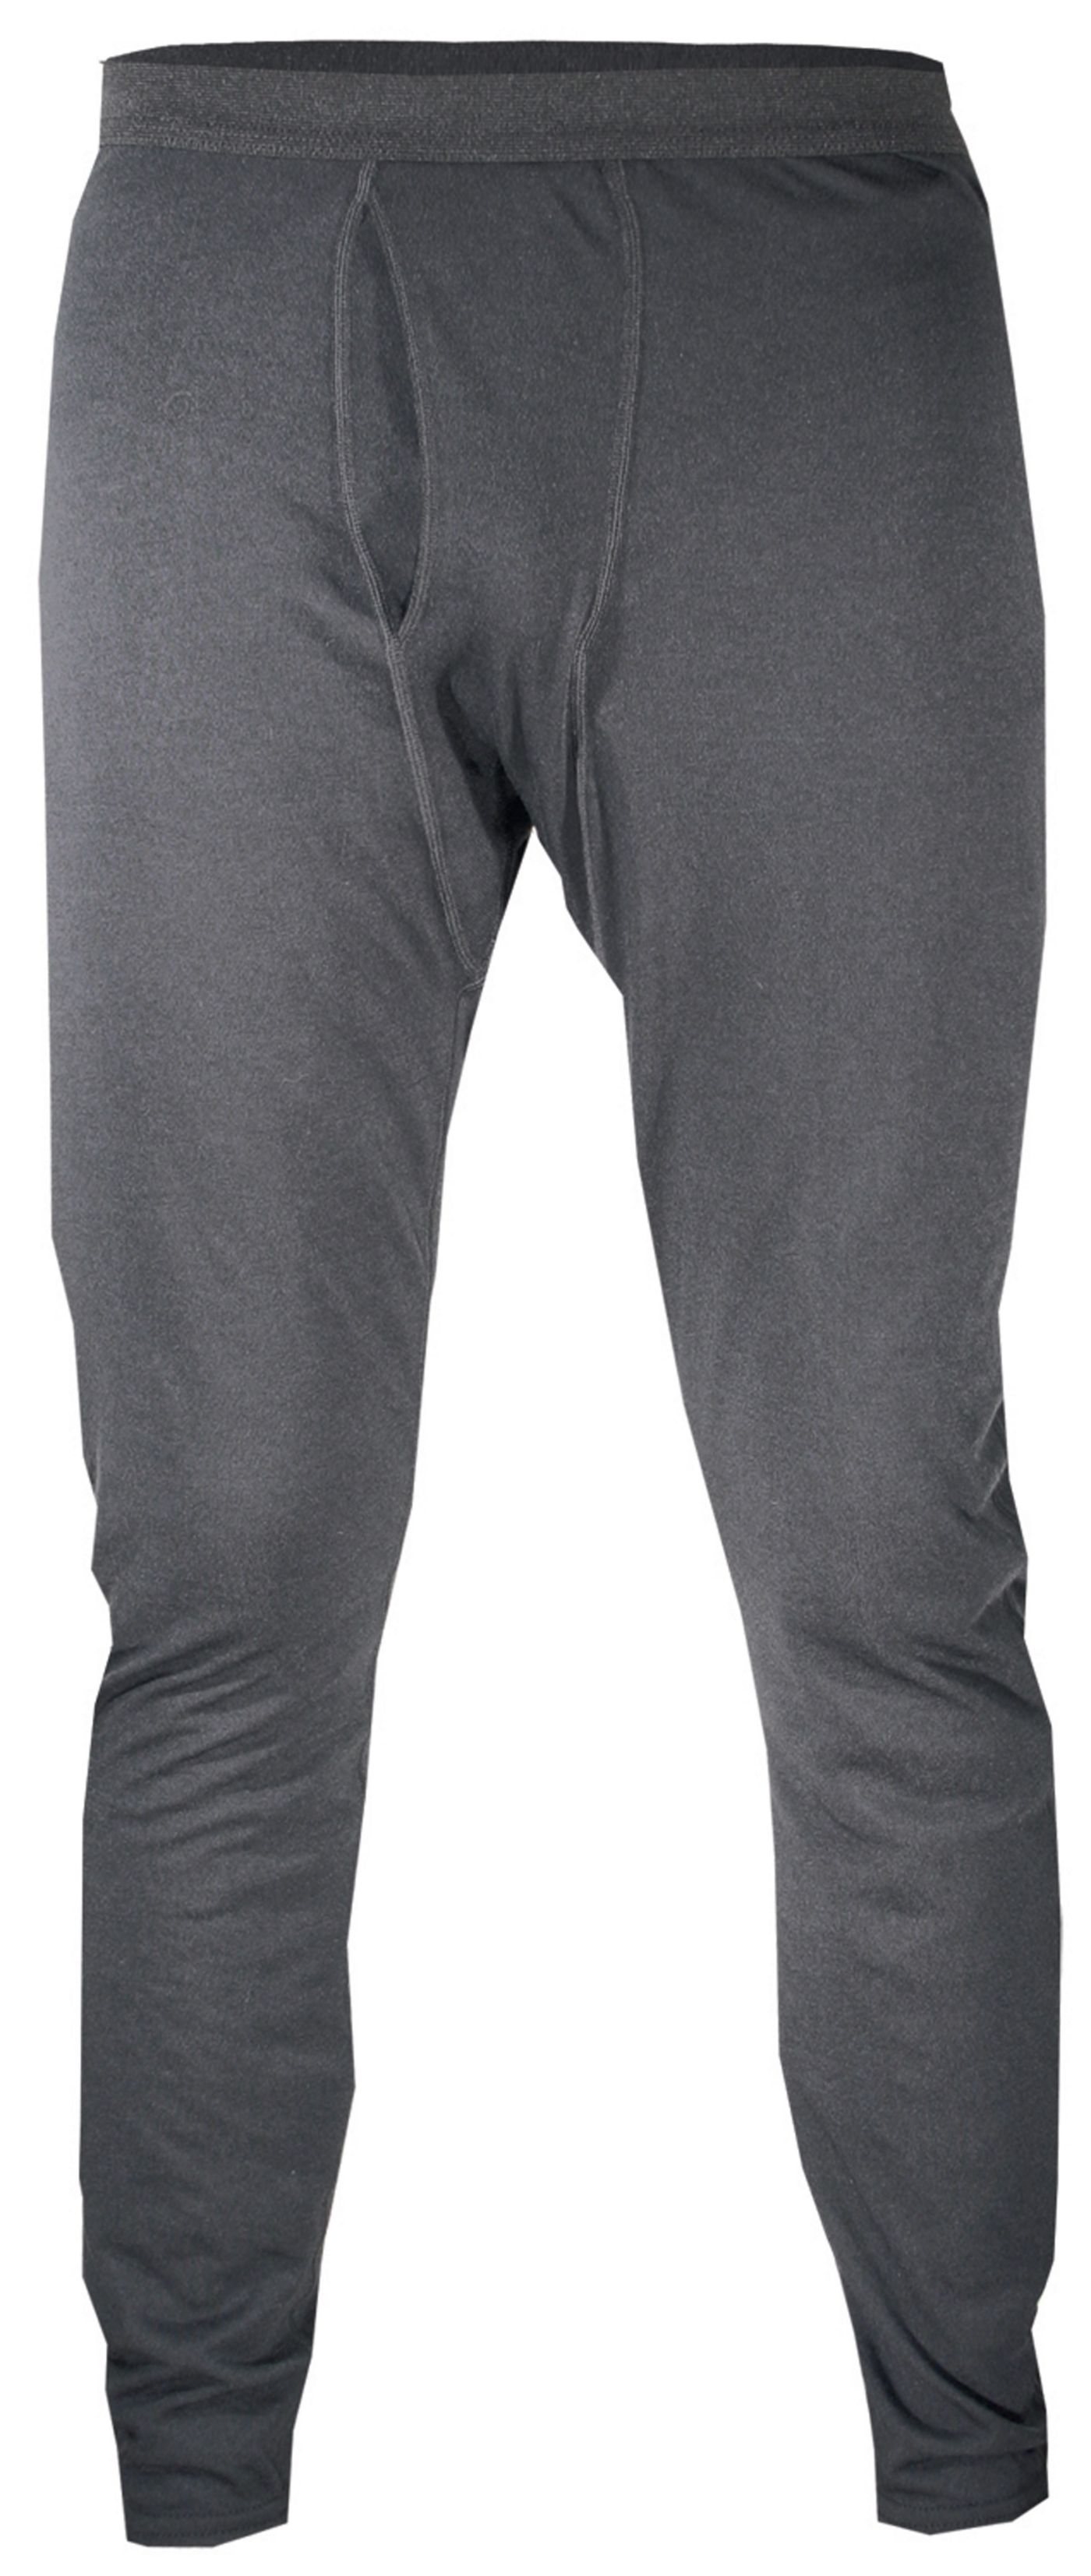 Hot Chillys Men's Pepper Skins Base Layer Pants